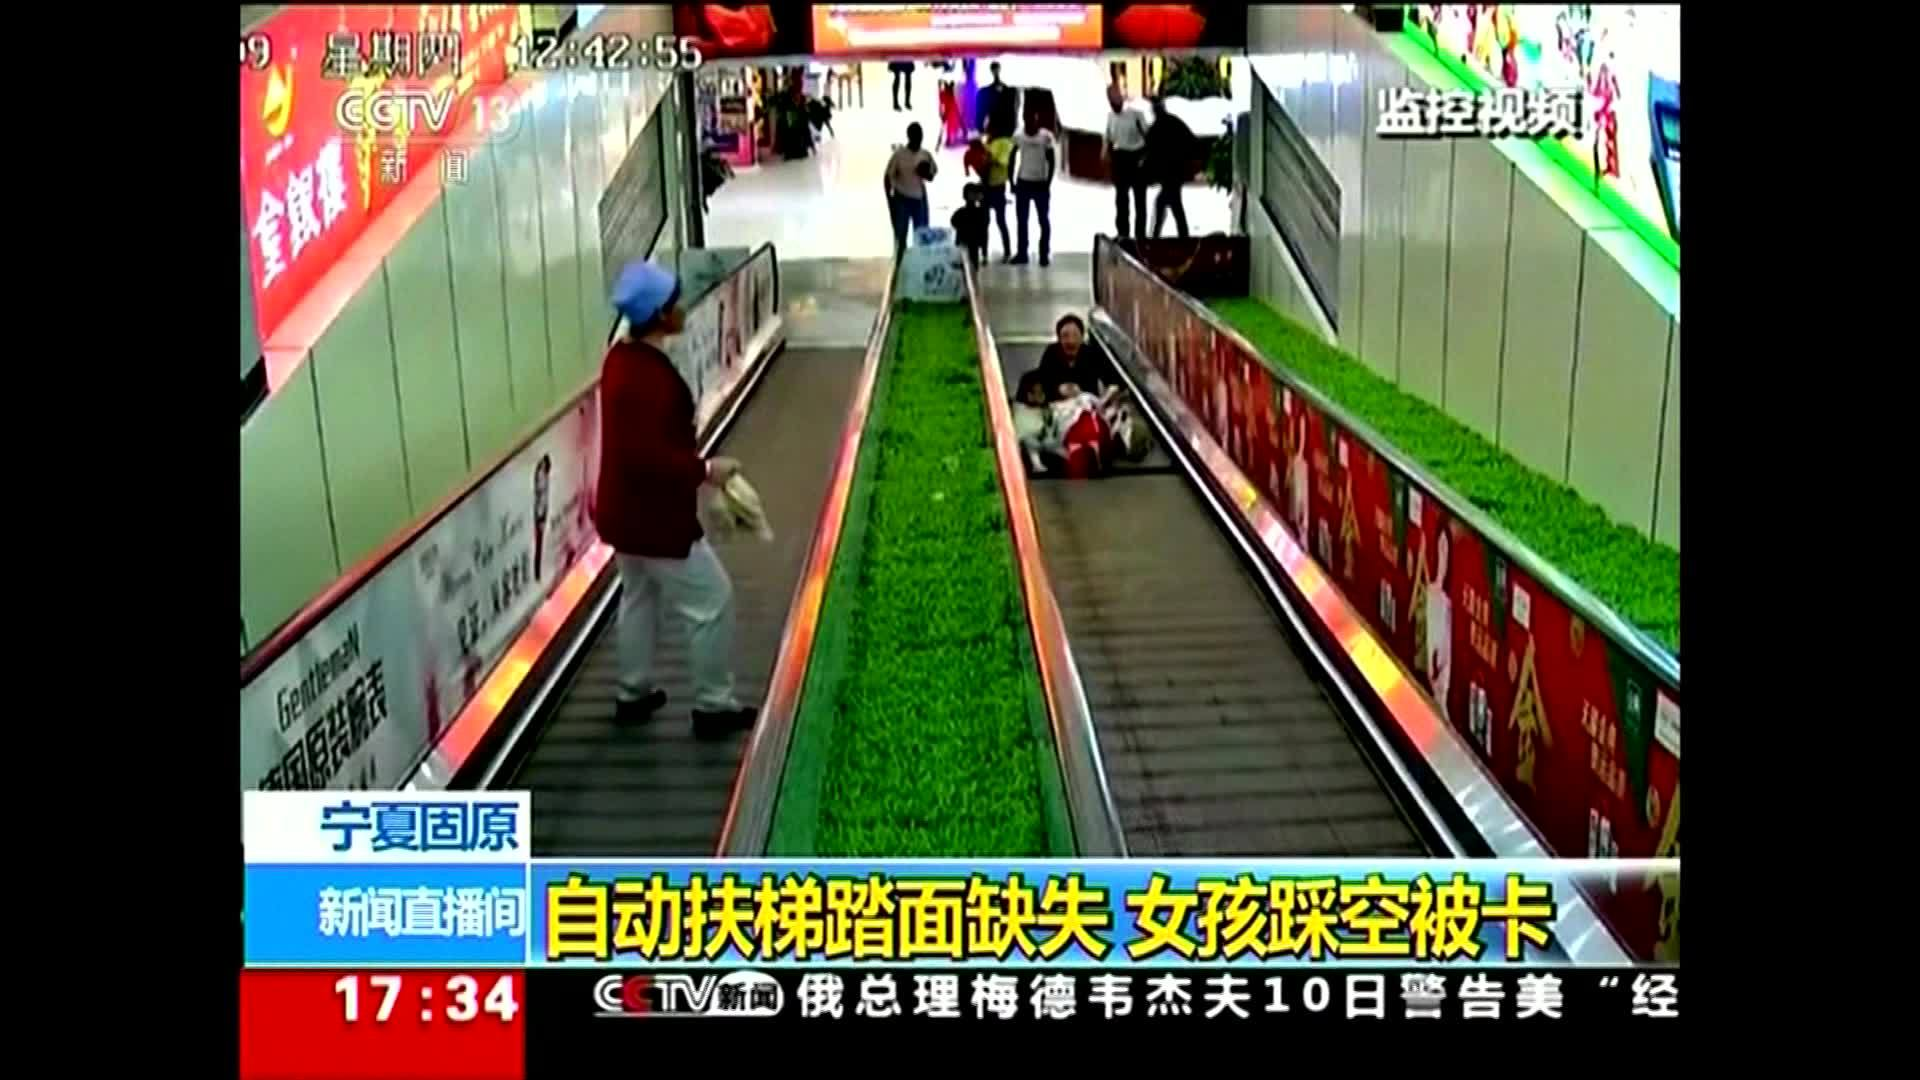 VIDEO: Girl gets trapped inside escalator